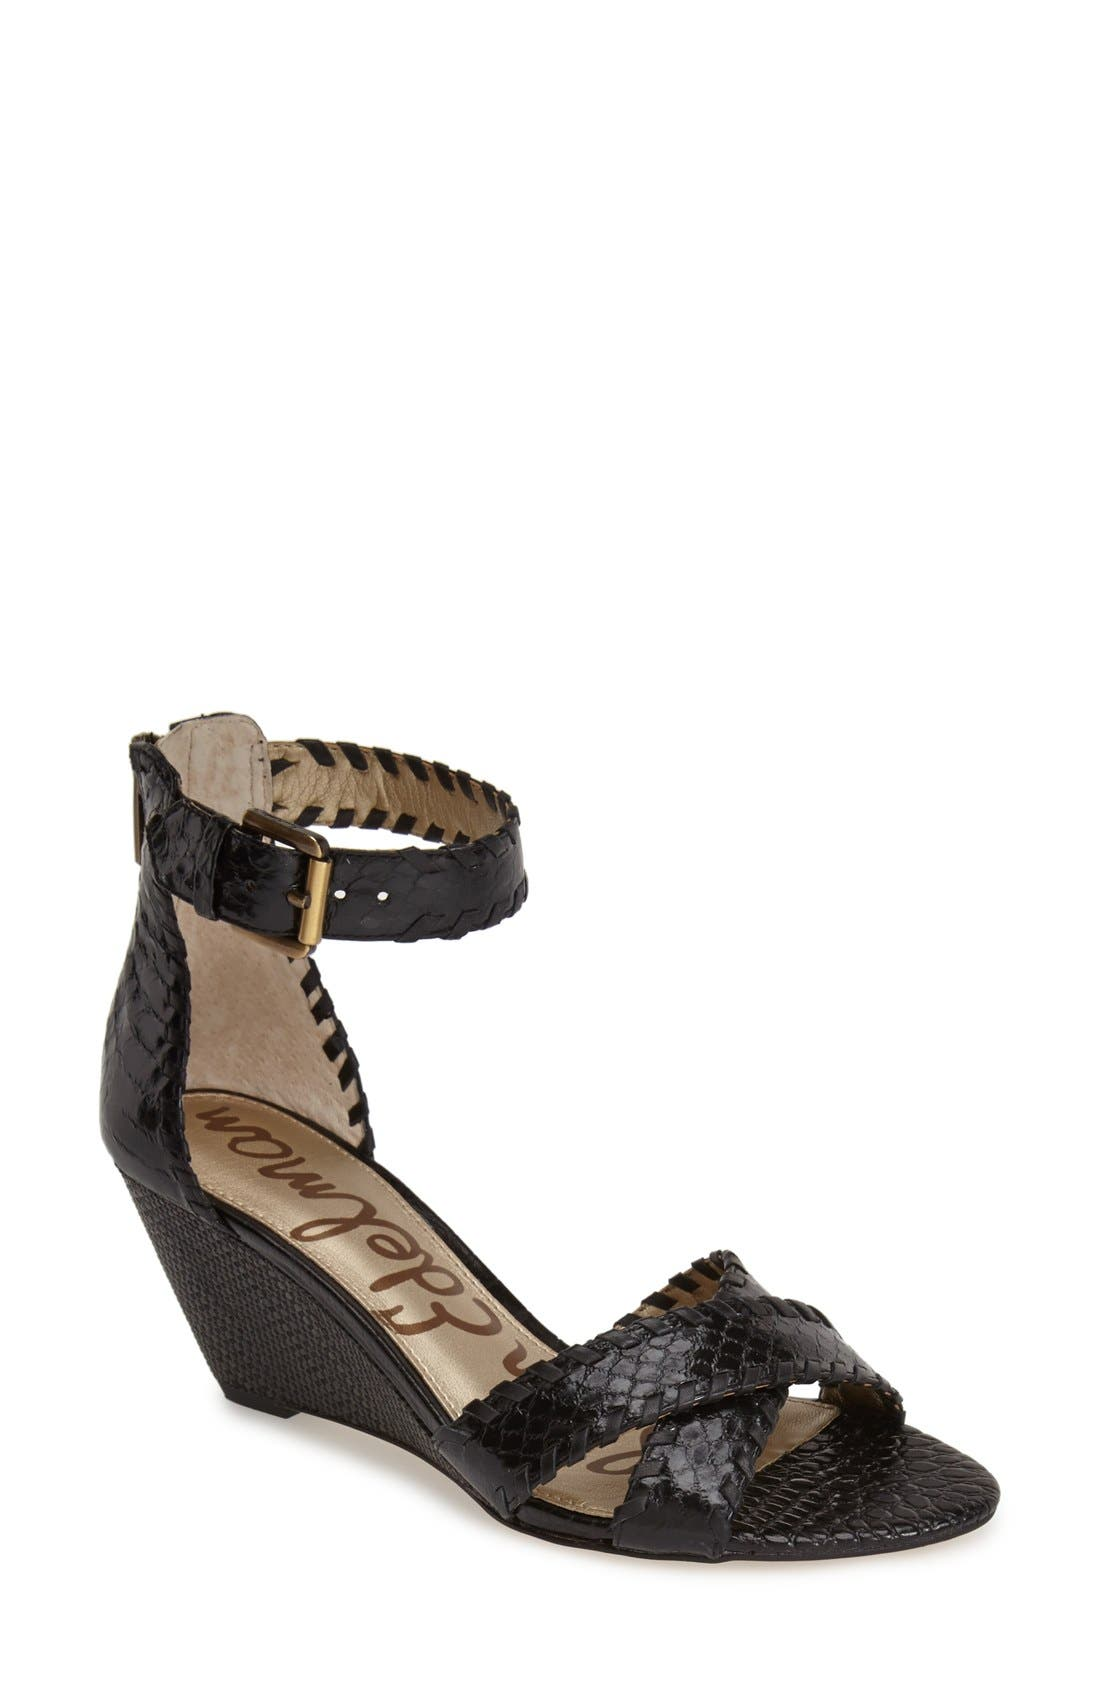 Alternate Image 1 Selected - Sam Edelman 'Silvia' Ankle Strap Wedge Sandal (Women)